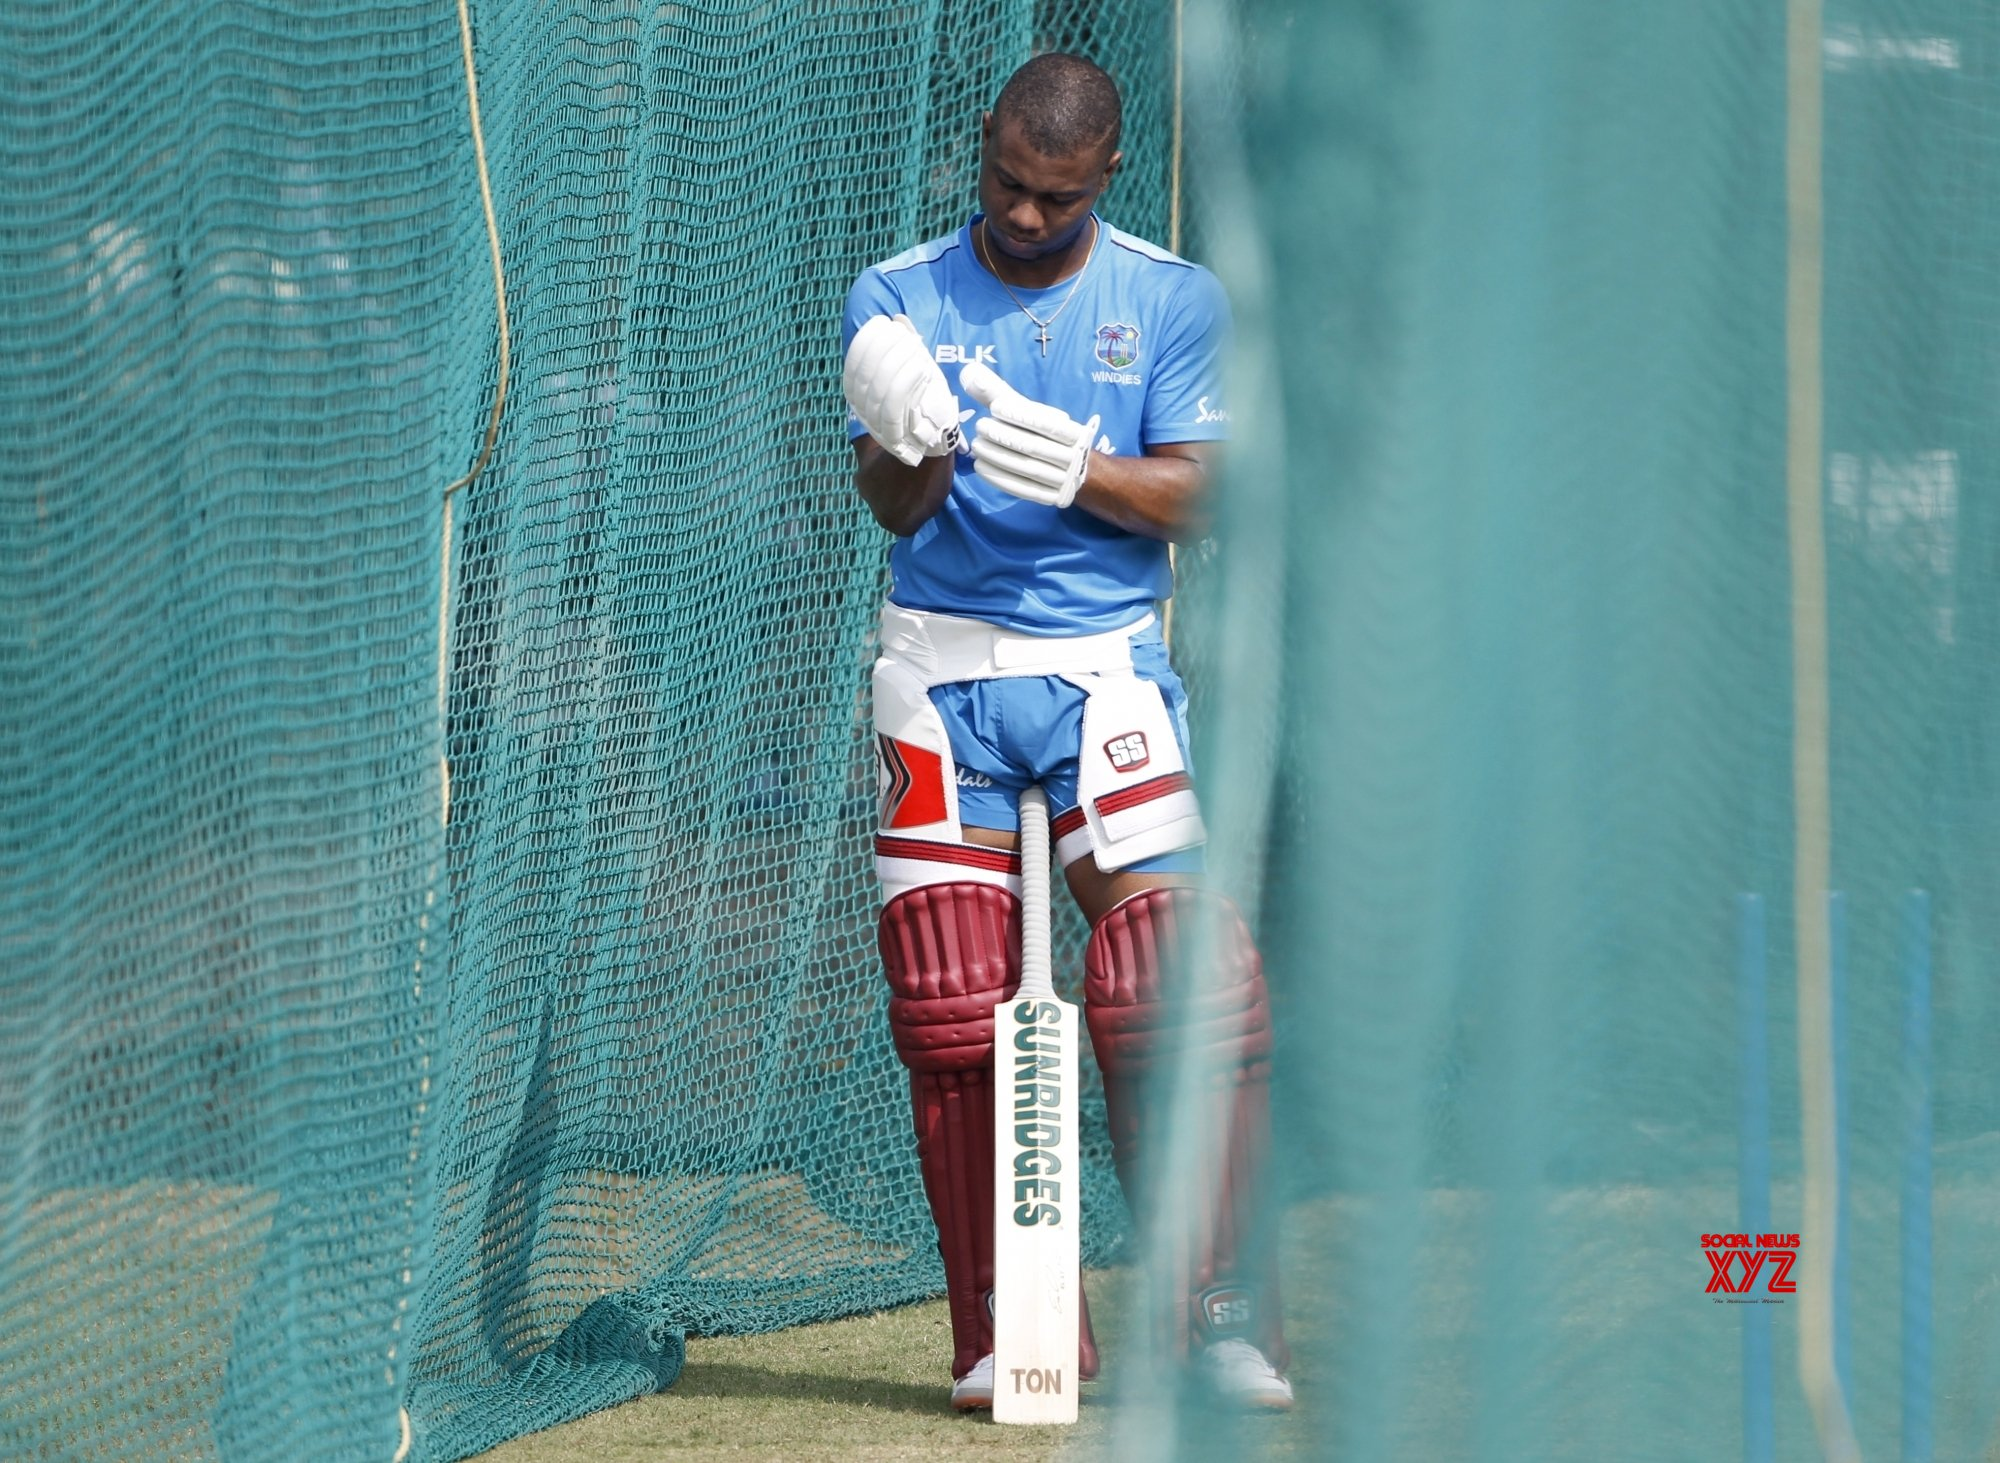 Hyderabad: West Indies - practice session - Evin Lewis #Gallery